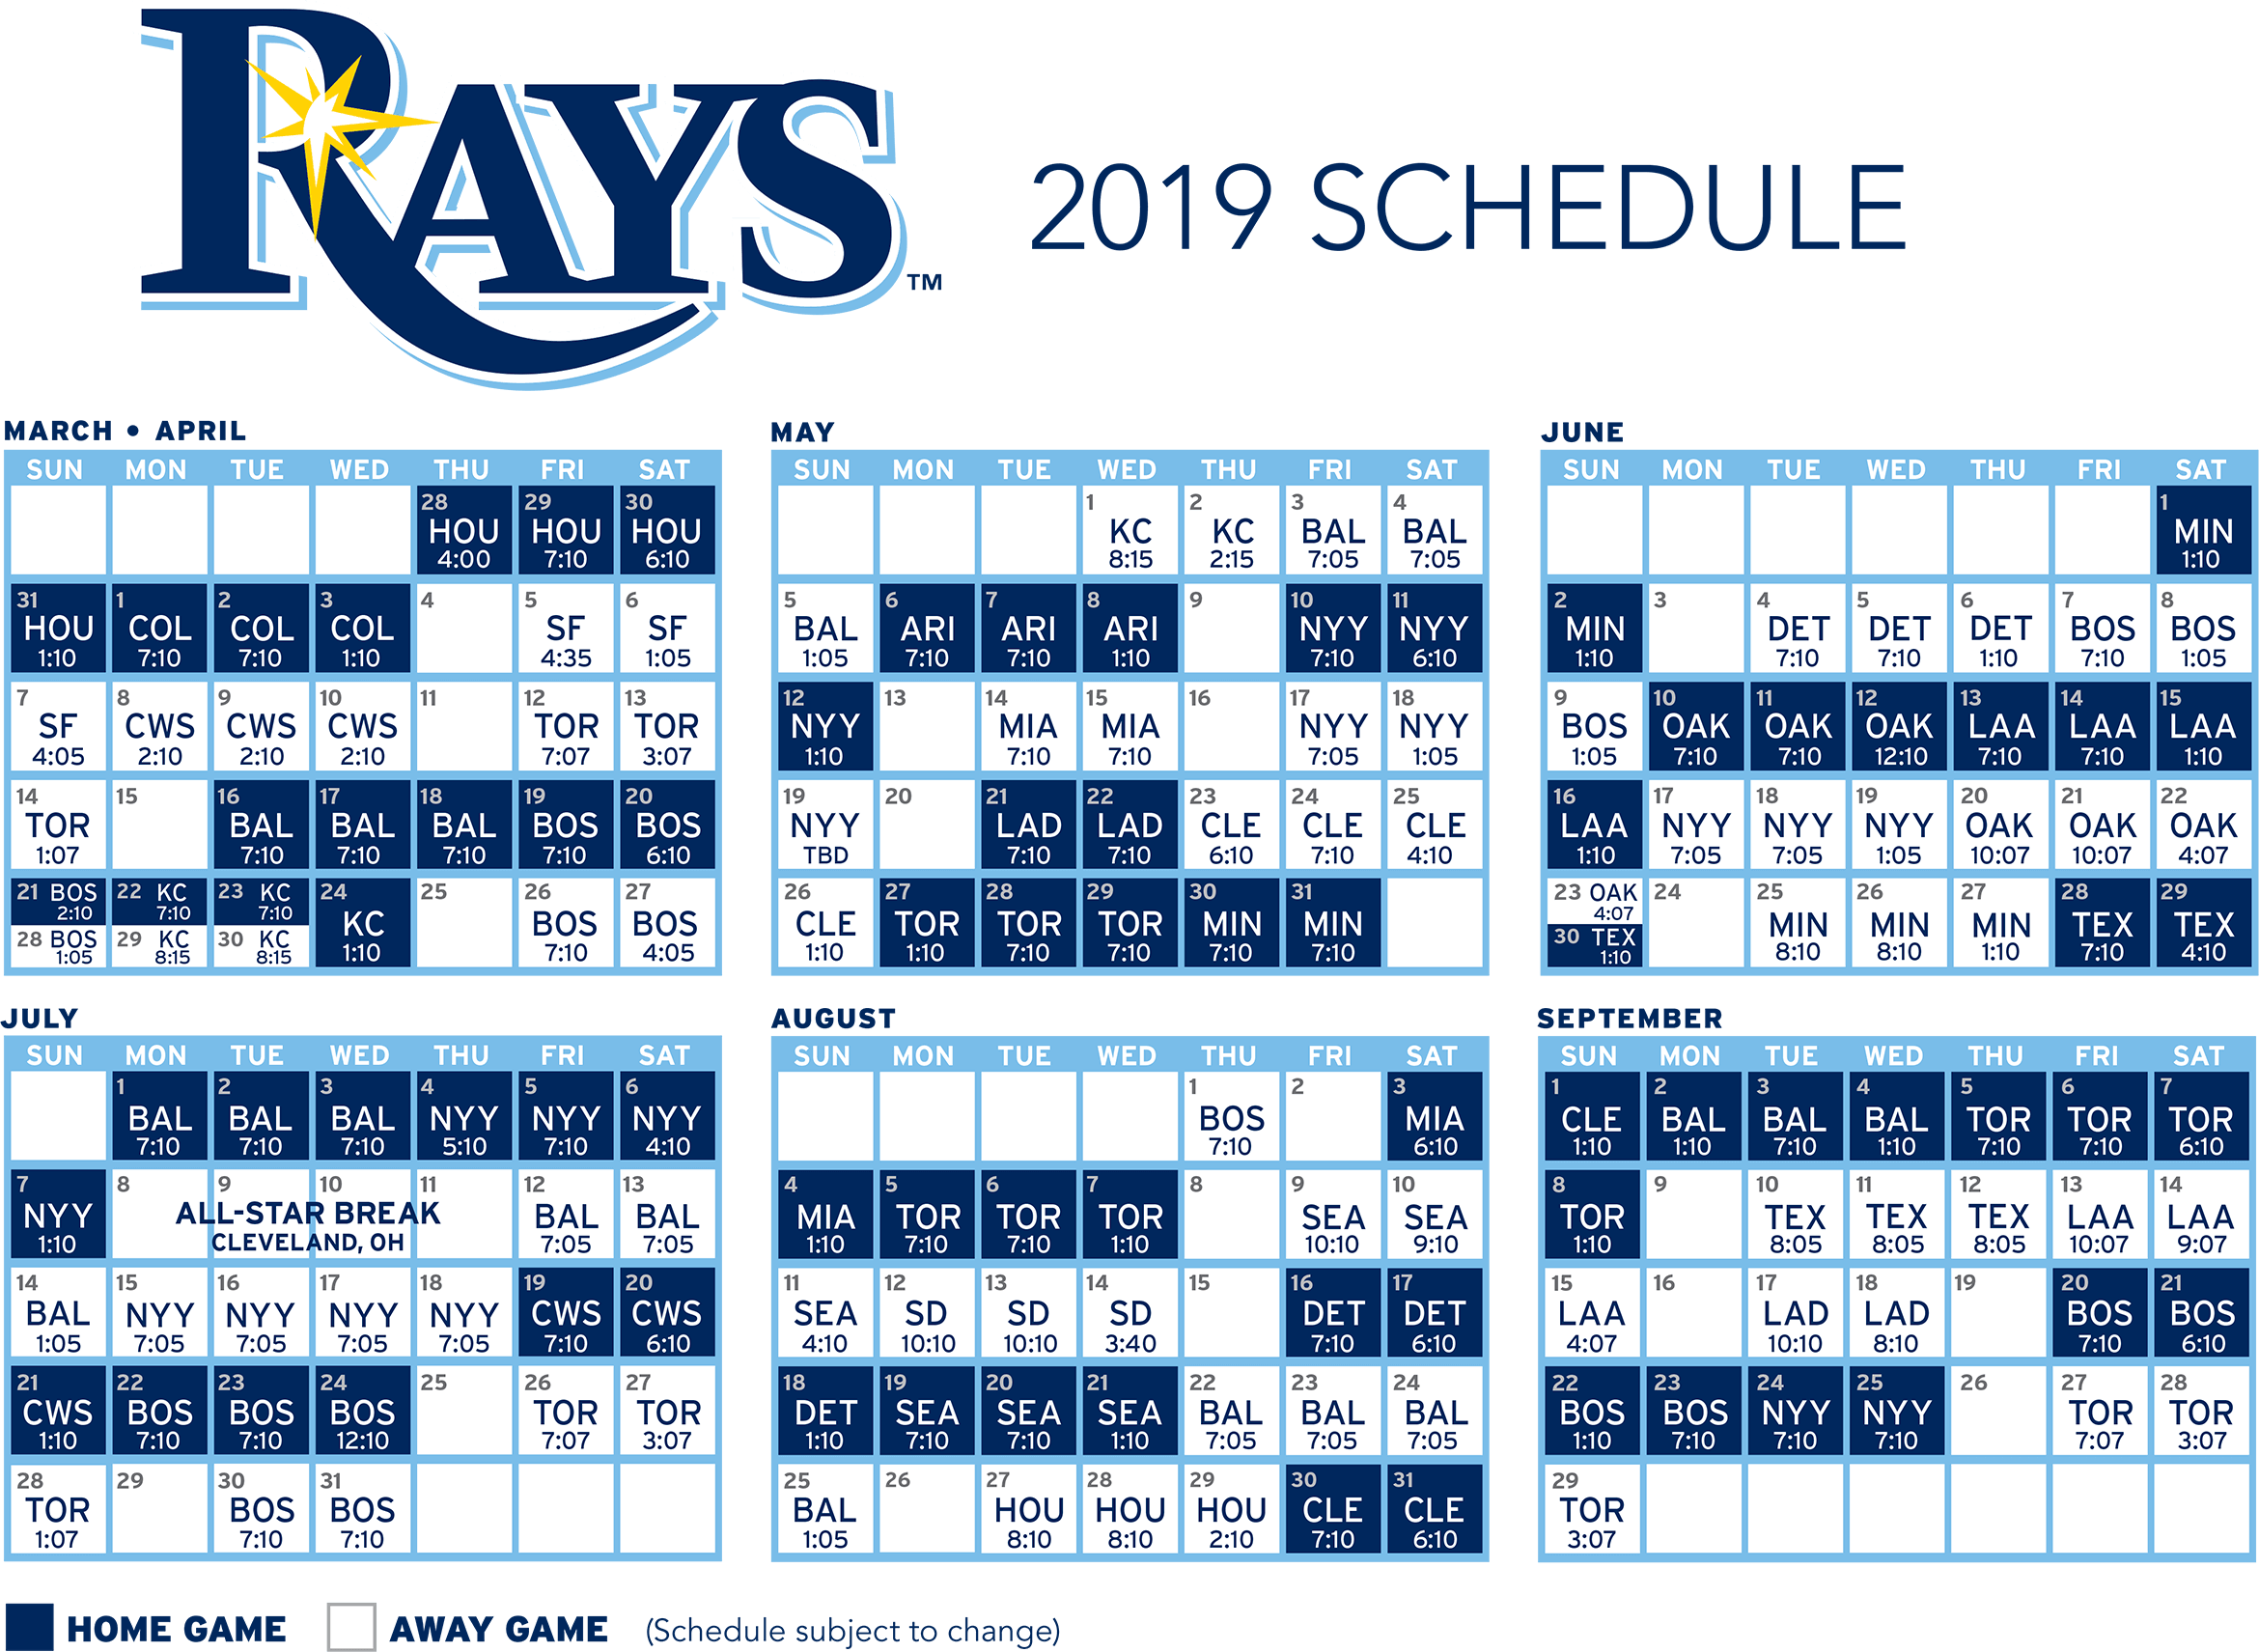 Download the 2019 Tampa Bay Rays Schedule